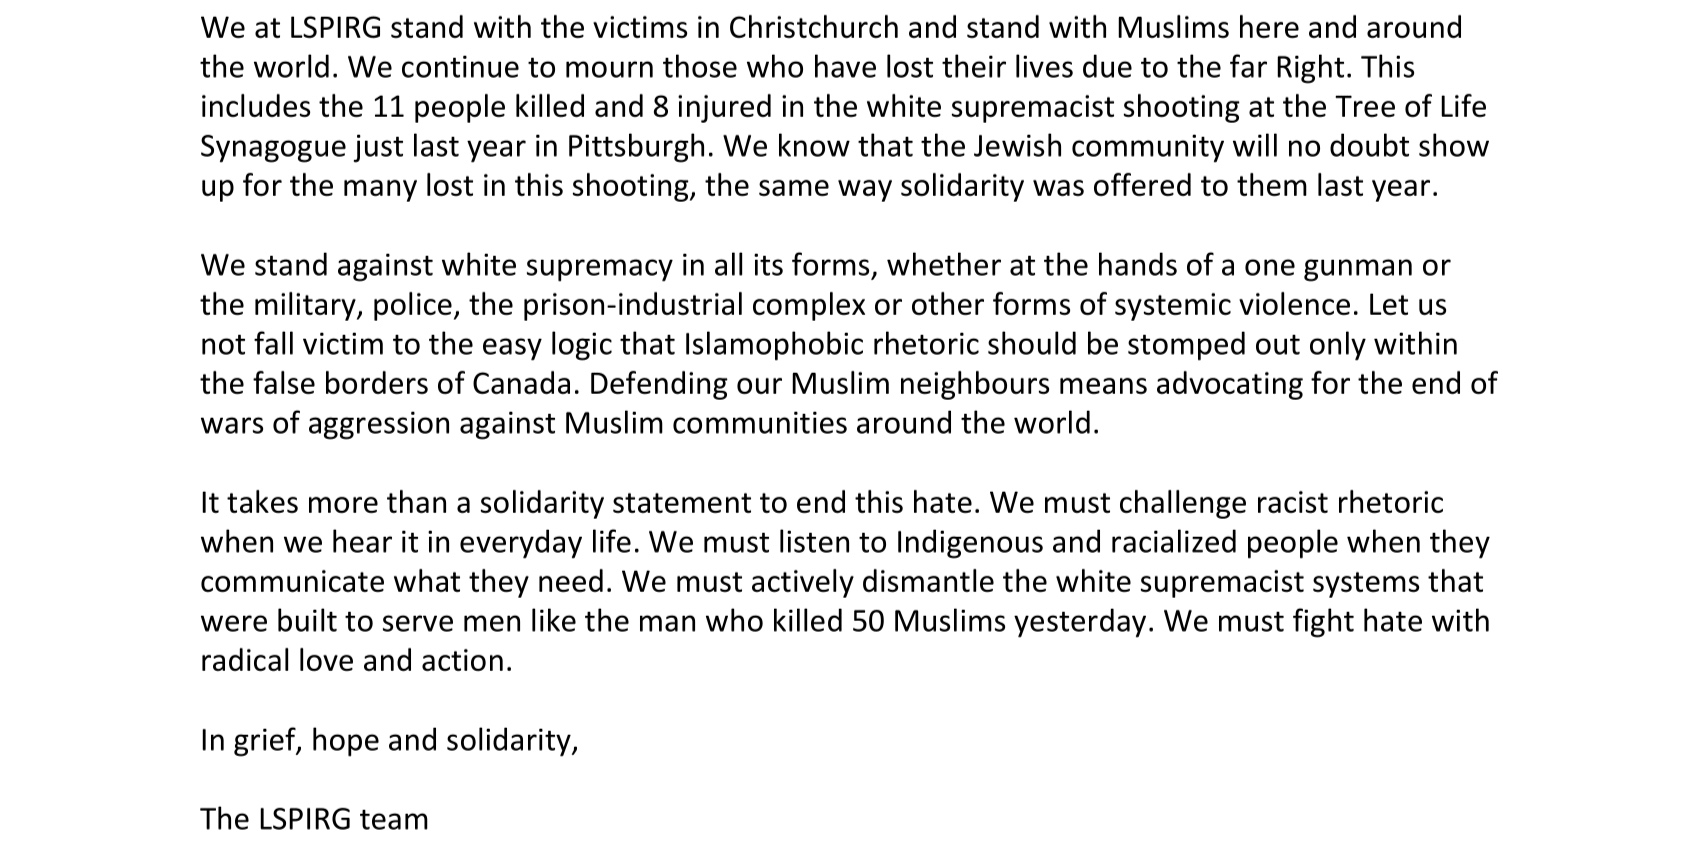 Christchurch+Statement-2.jpg